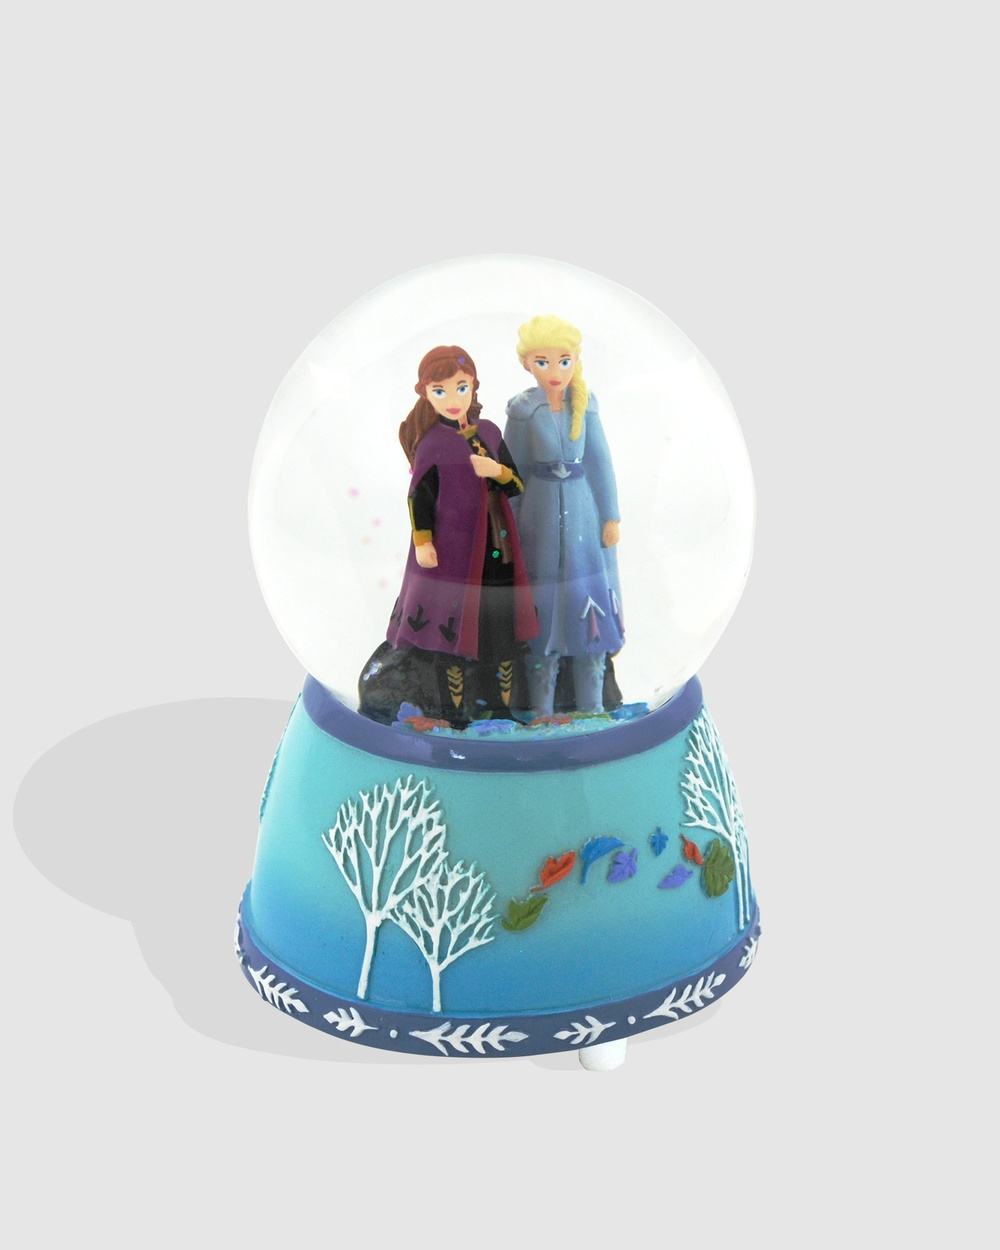 Disney Frozen 2 by Pink Poppy Wind up Musical Snow Globe All toys Blue Wind-up